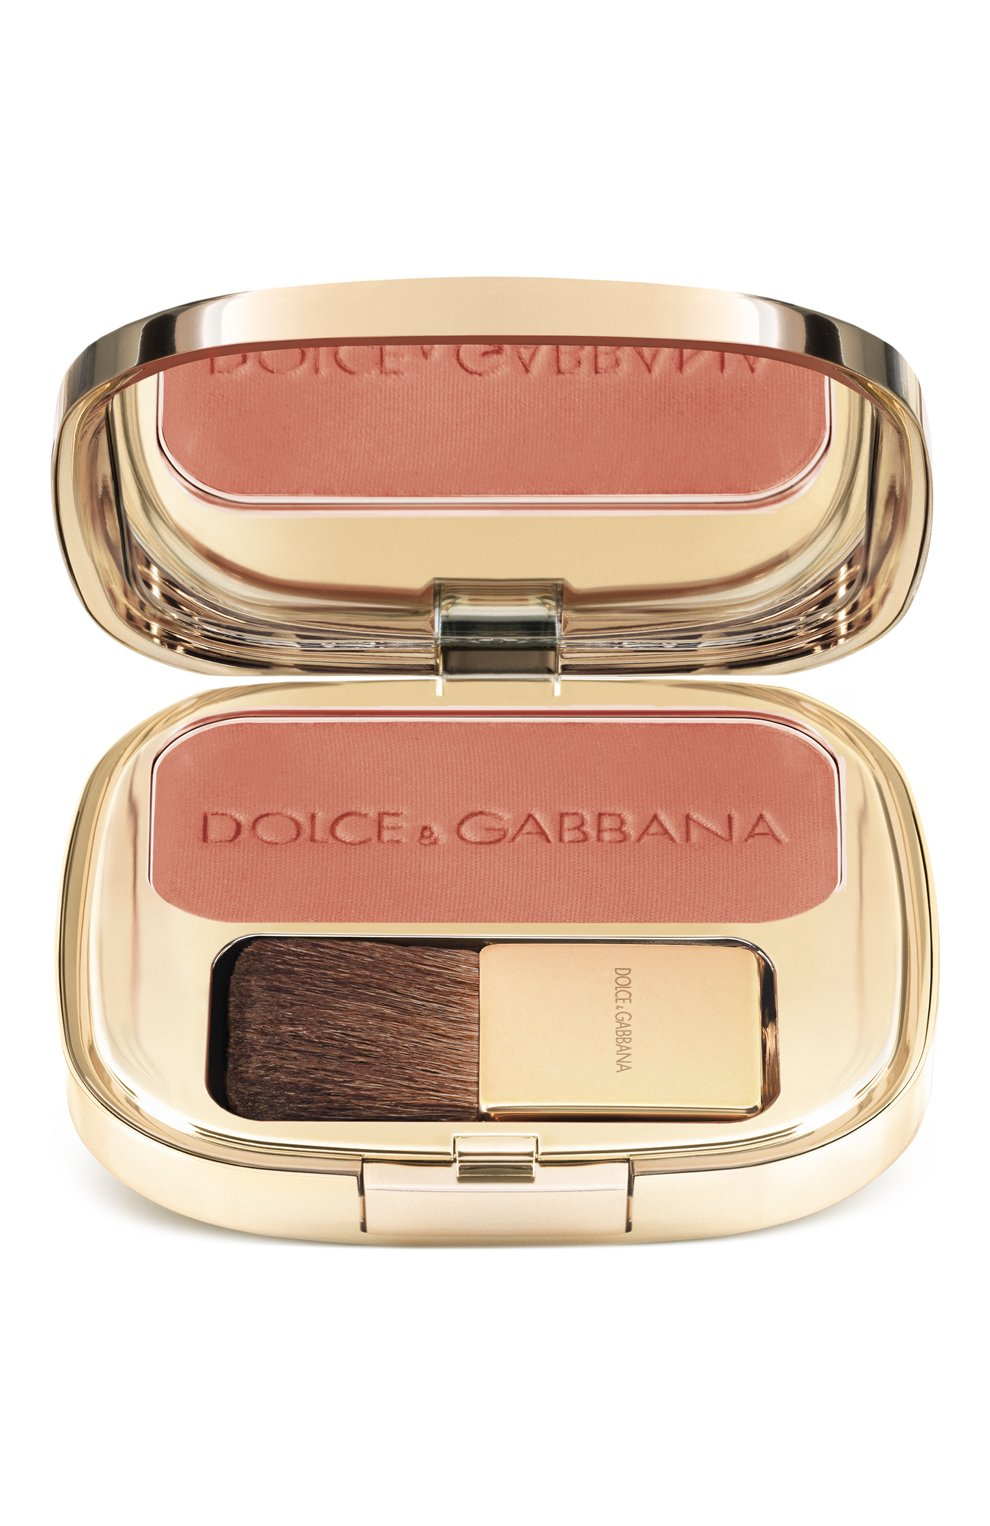 Румяна Luminous Cheek Colour 27 тон (apricot) Dolce & Gabbana | Фото №1